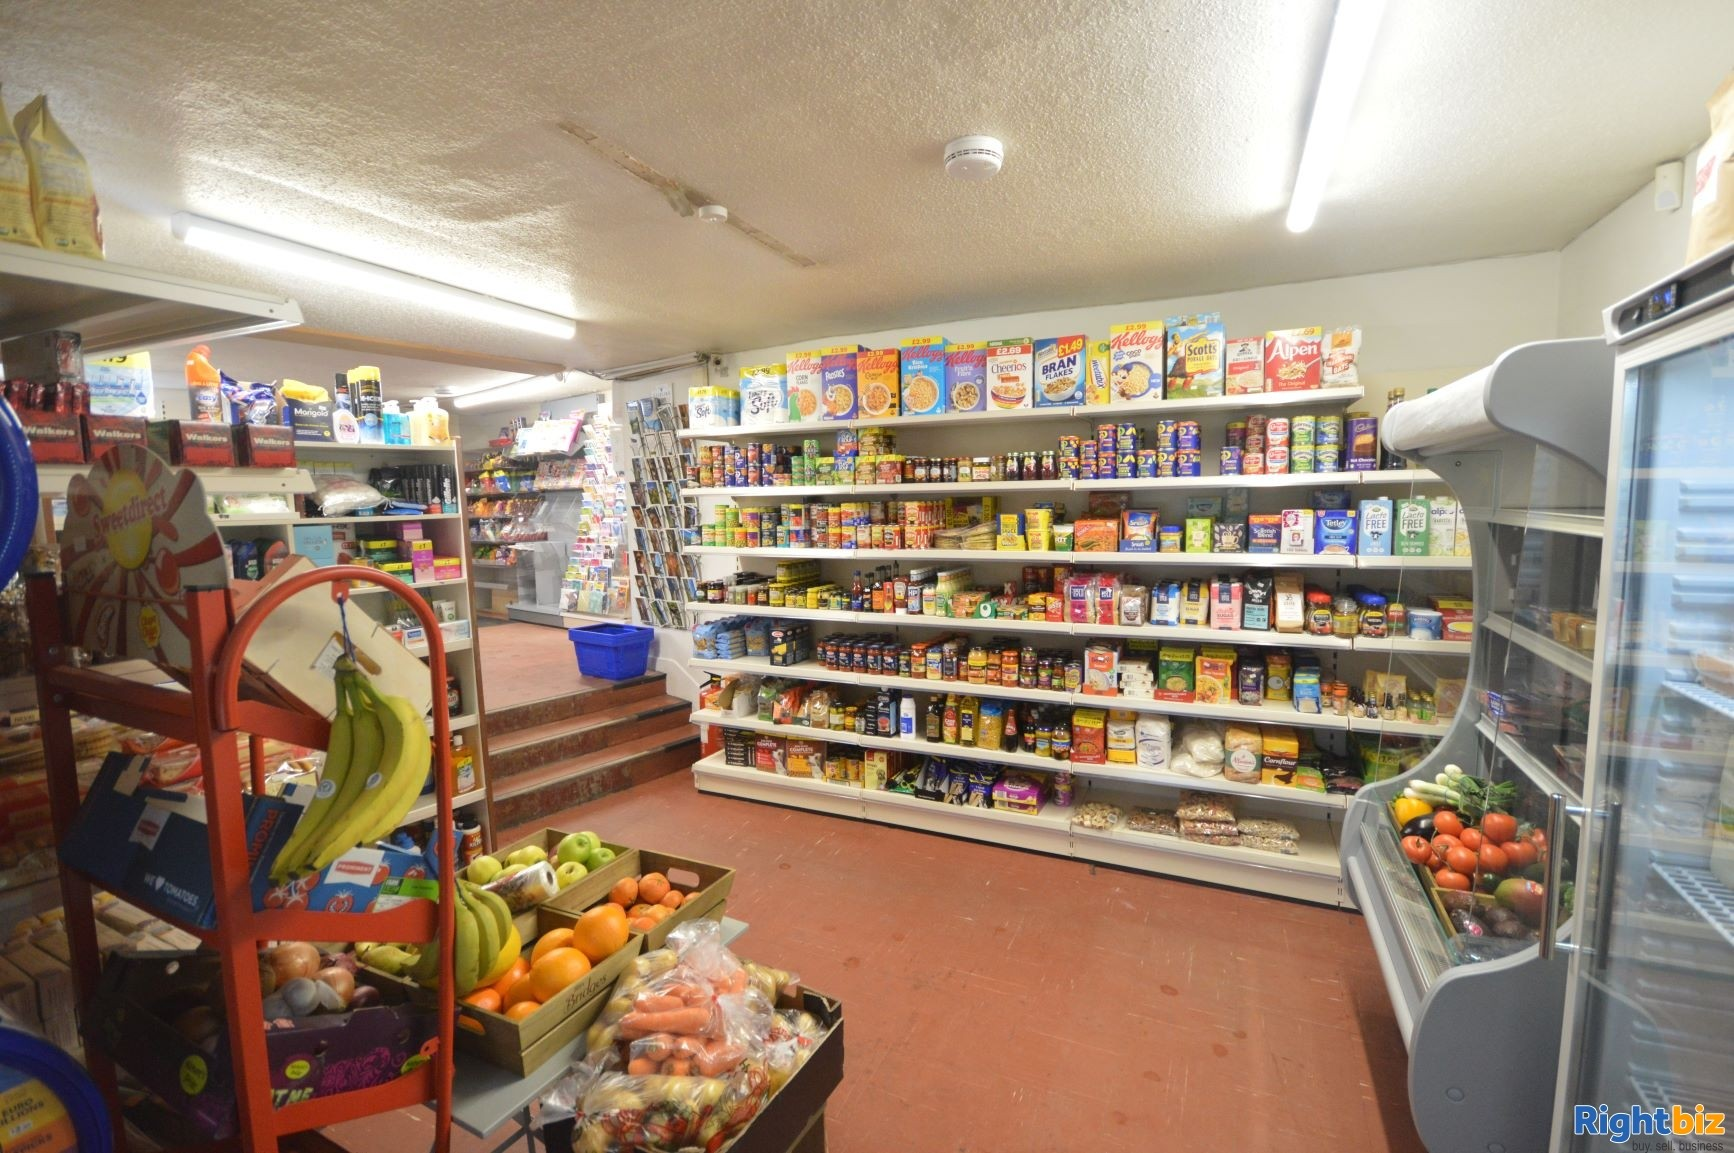 Post Office, Village Store and Tearoom located in the stunning East of Scotland village of Glamis (r - Image 3